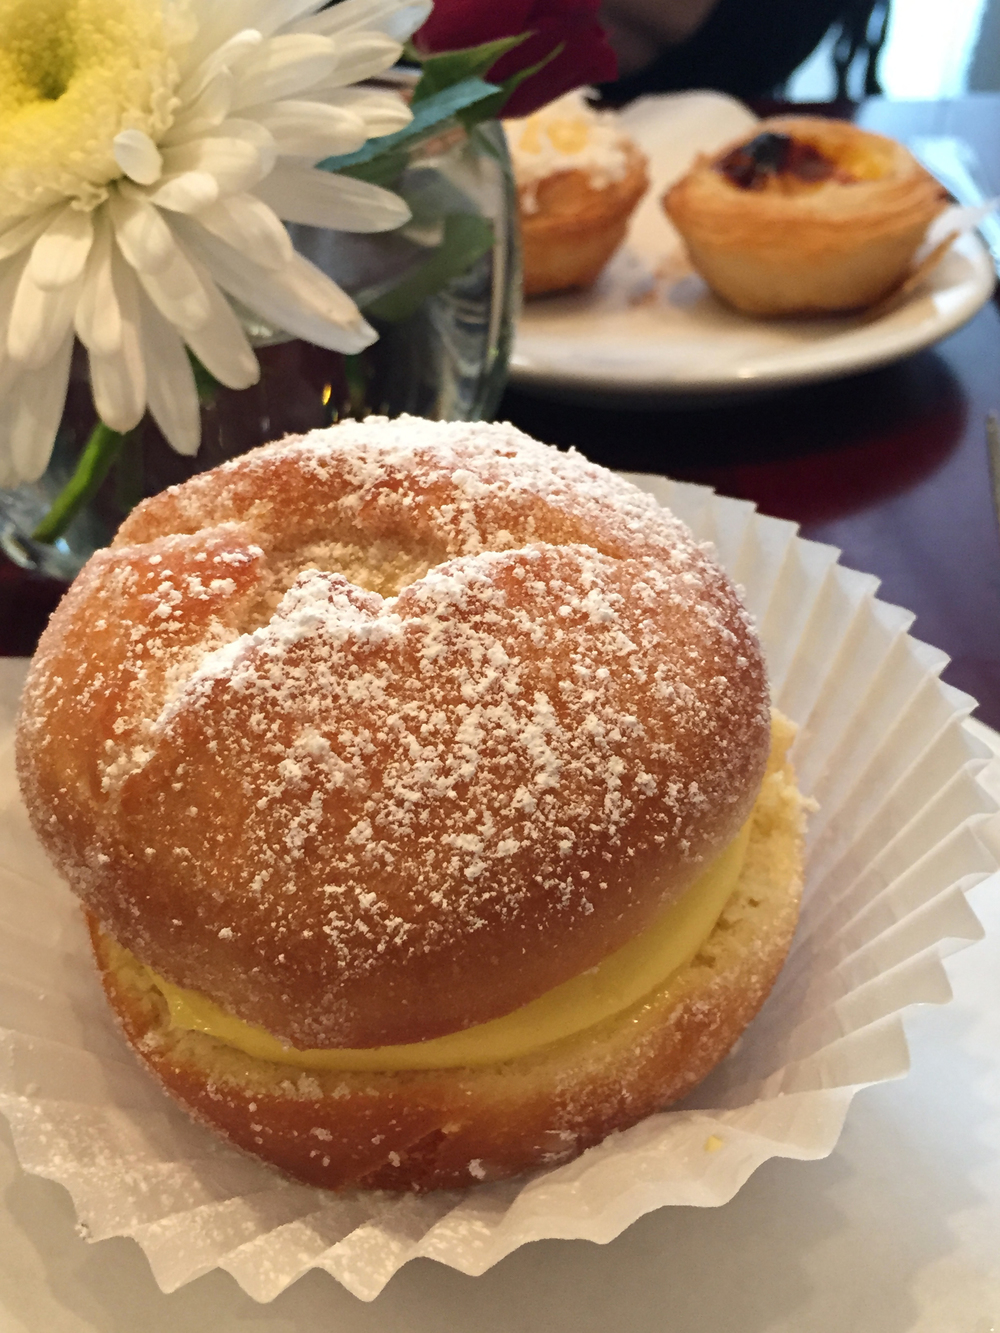 Bola de Berlin - a donut filled with pasty cream.